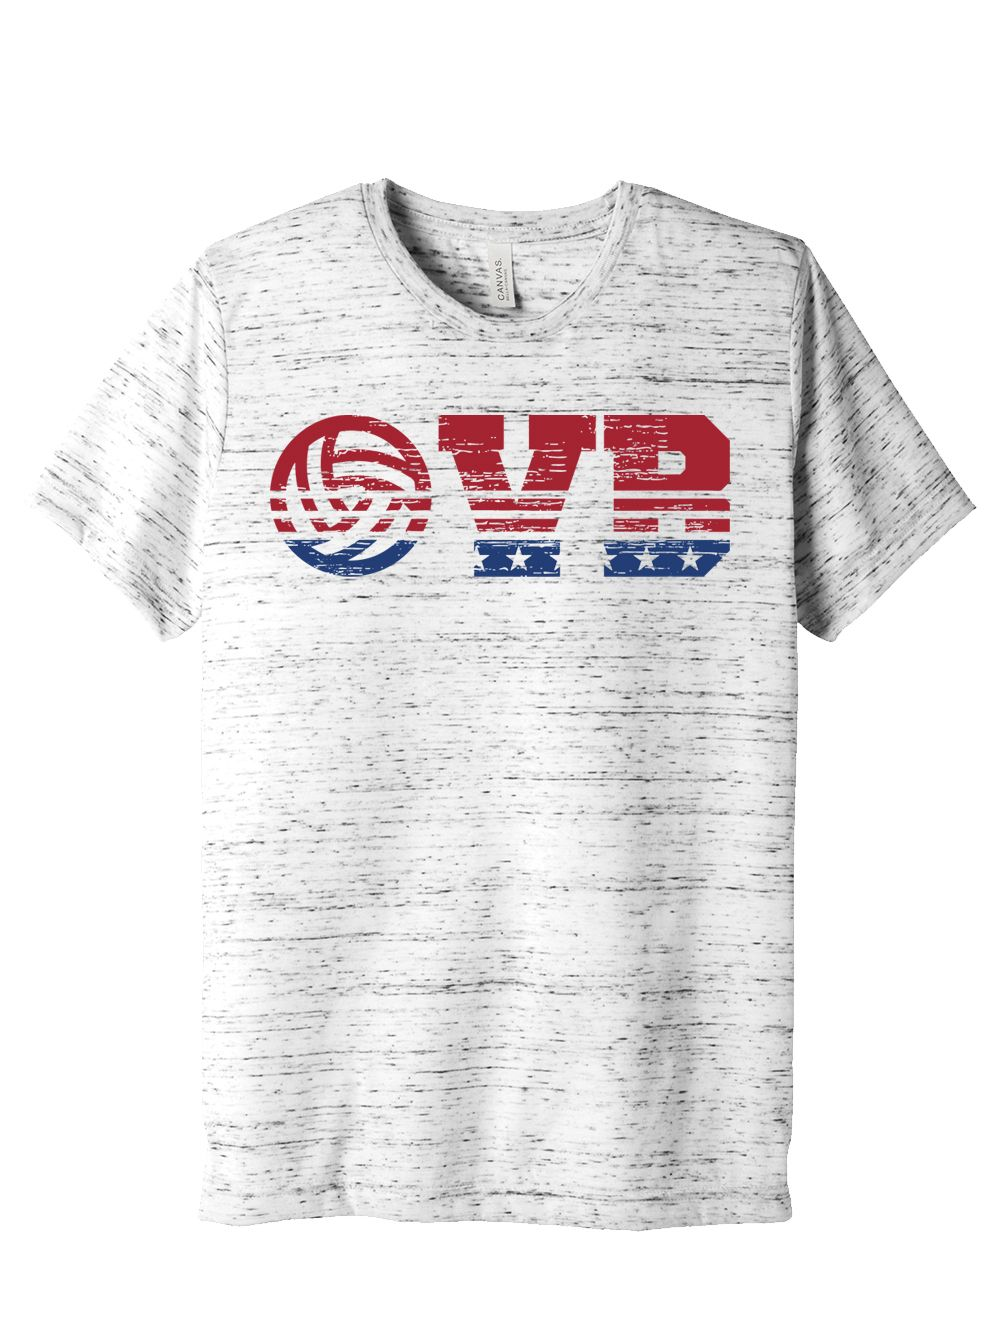 White Red Blue Volleyball Tee Volleyball Shirt Designs Volleyball Designs Shirt Designs